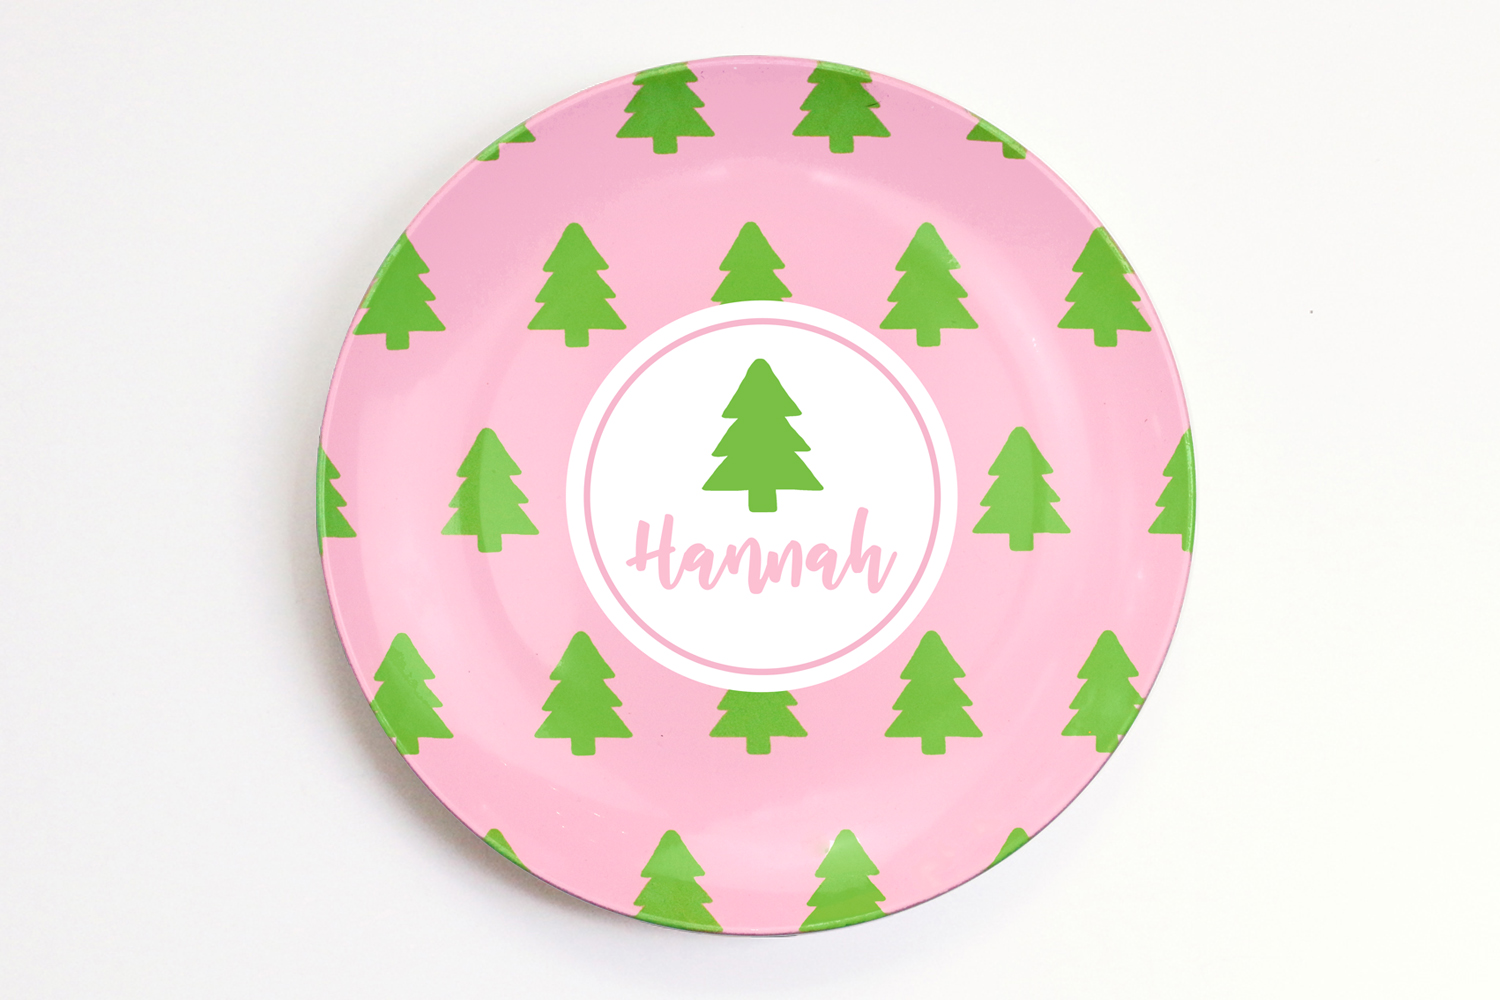 Personalized Christmas Plate For Kids When It Rains Paper Co Colorful And Fun Paper Goods Office Supplies And Personalized Gifts